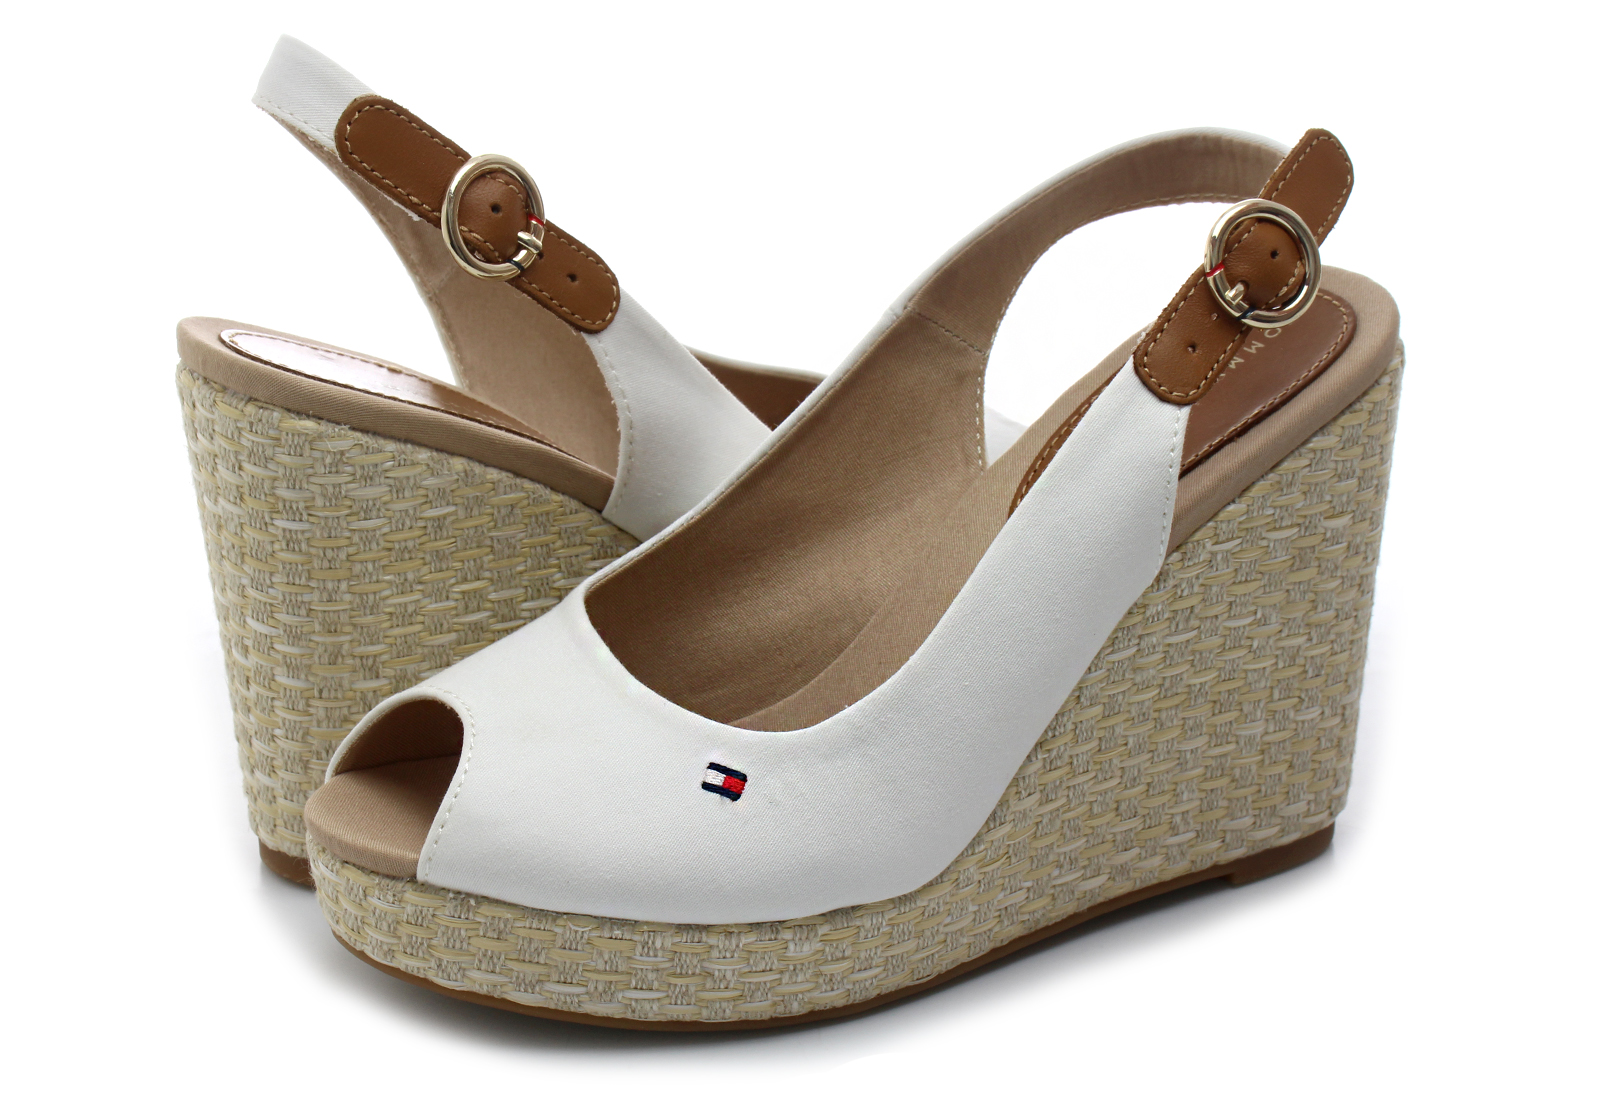 b2361a88db73 Tommy Hilfiger Sandals - Elena 57 - 18S-2787-121 - Online shop for ...